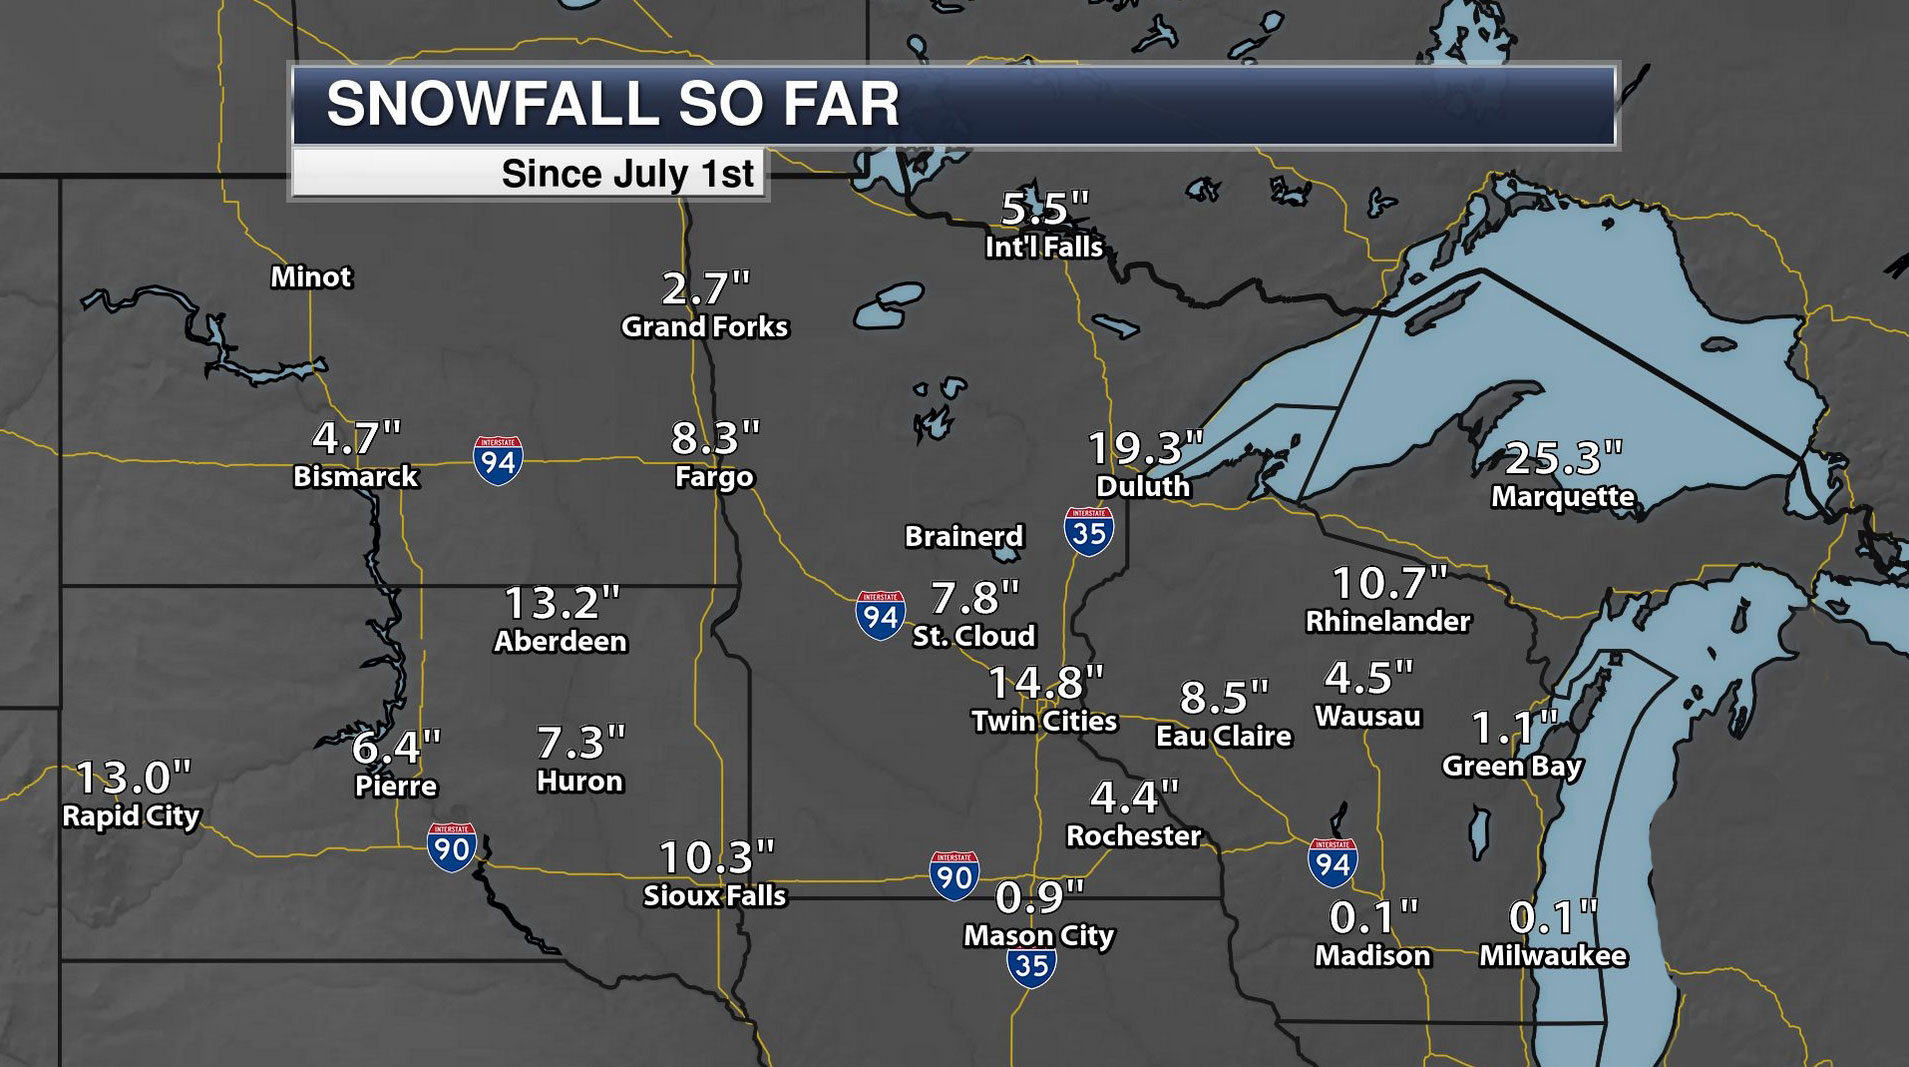 snowfall-so-far-radar